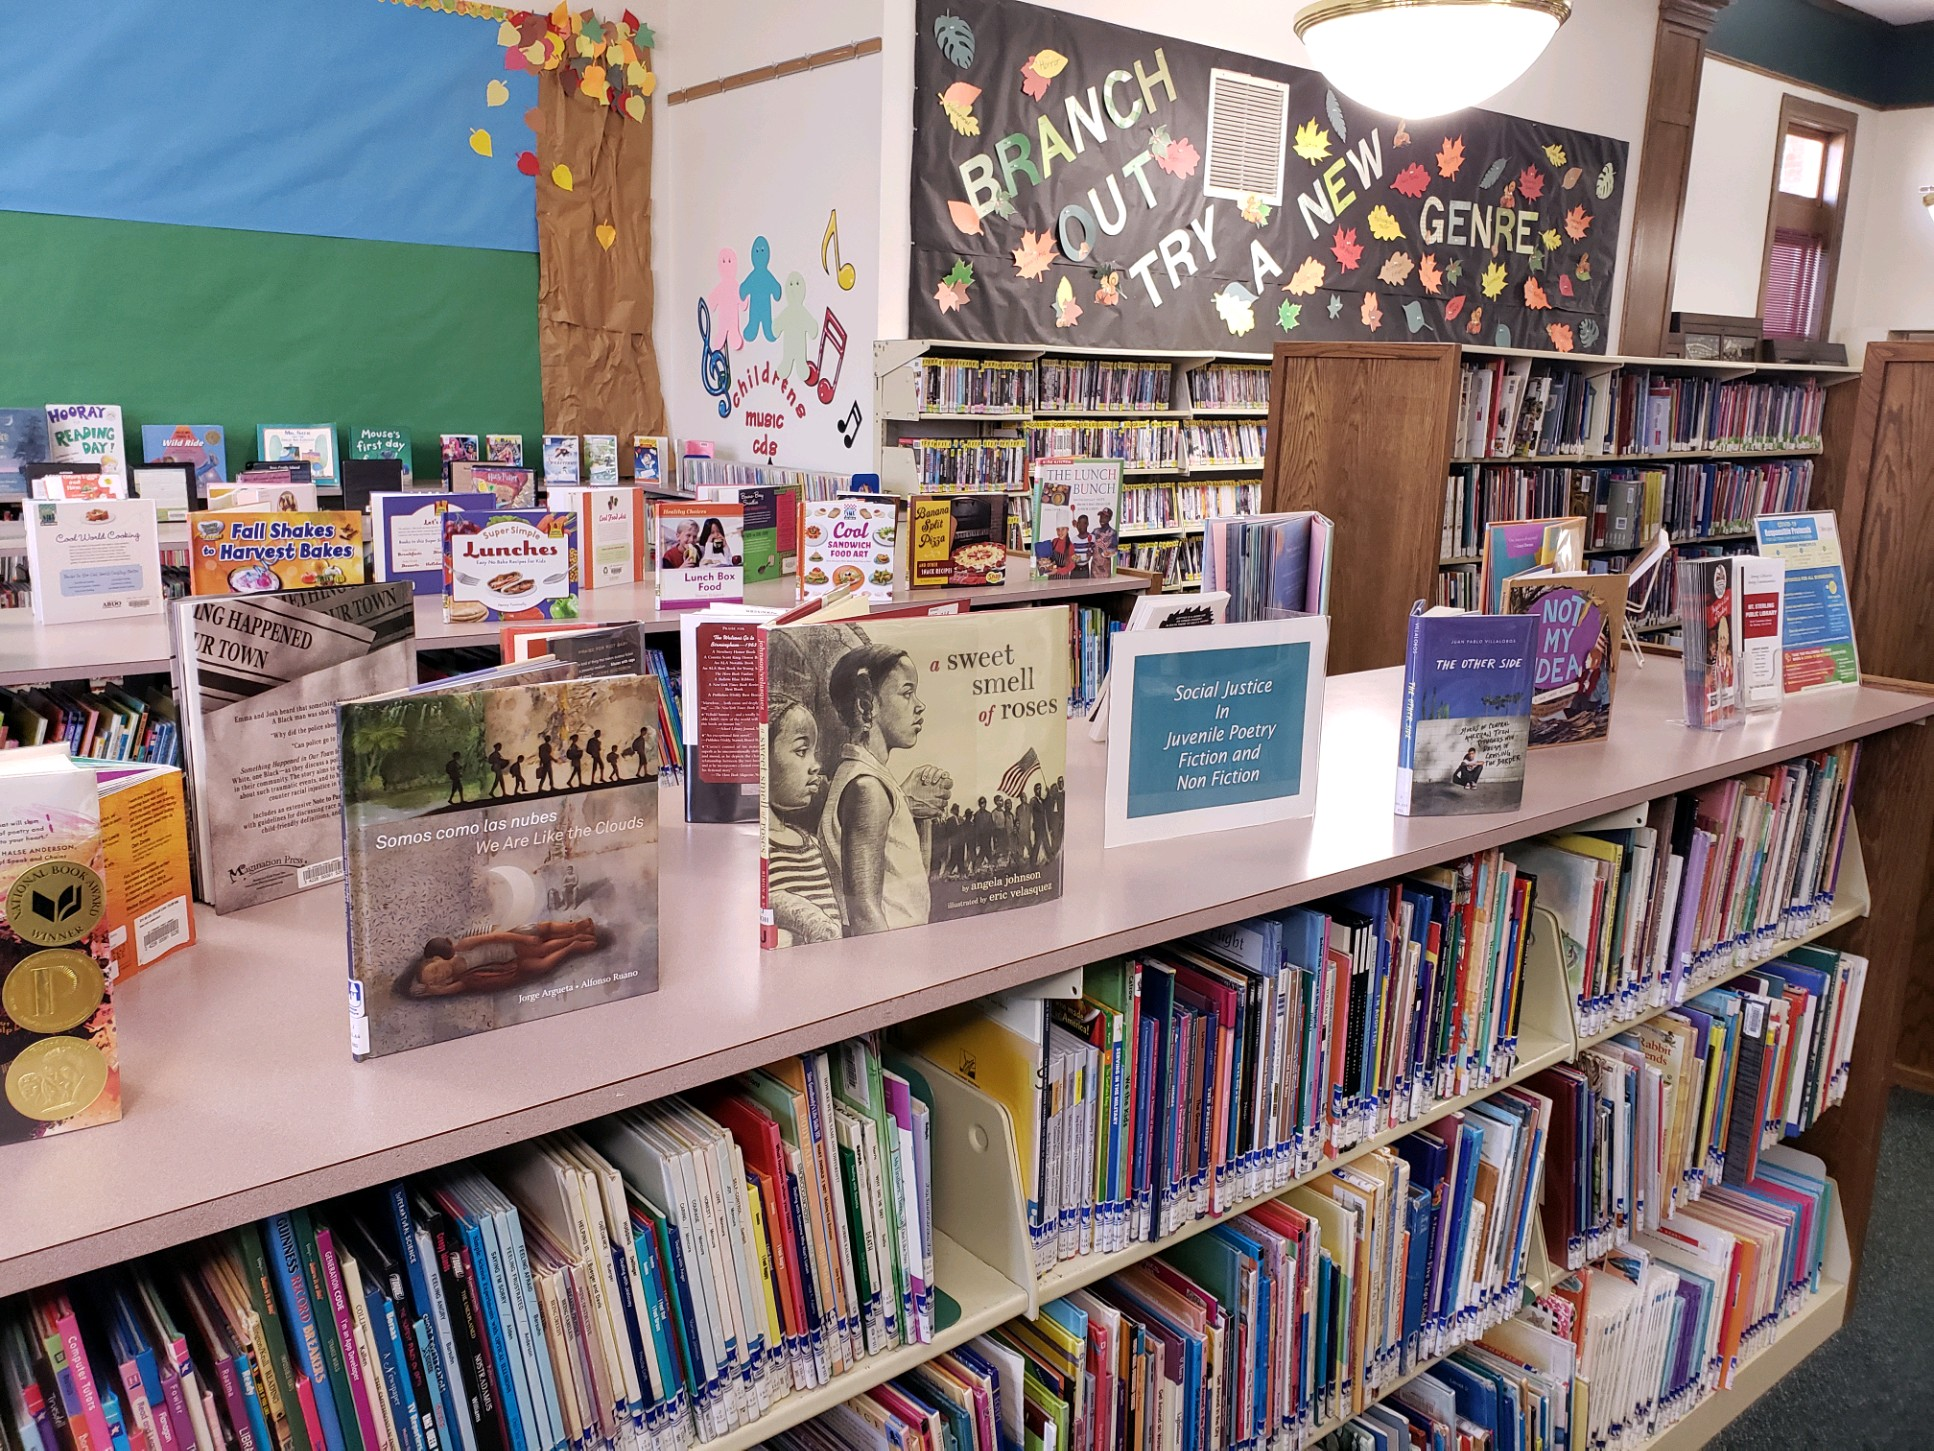 Check out one of our book displays